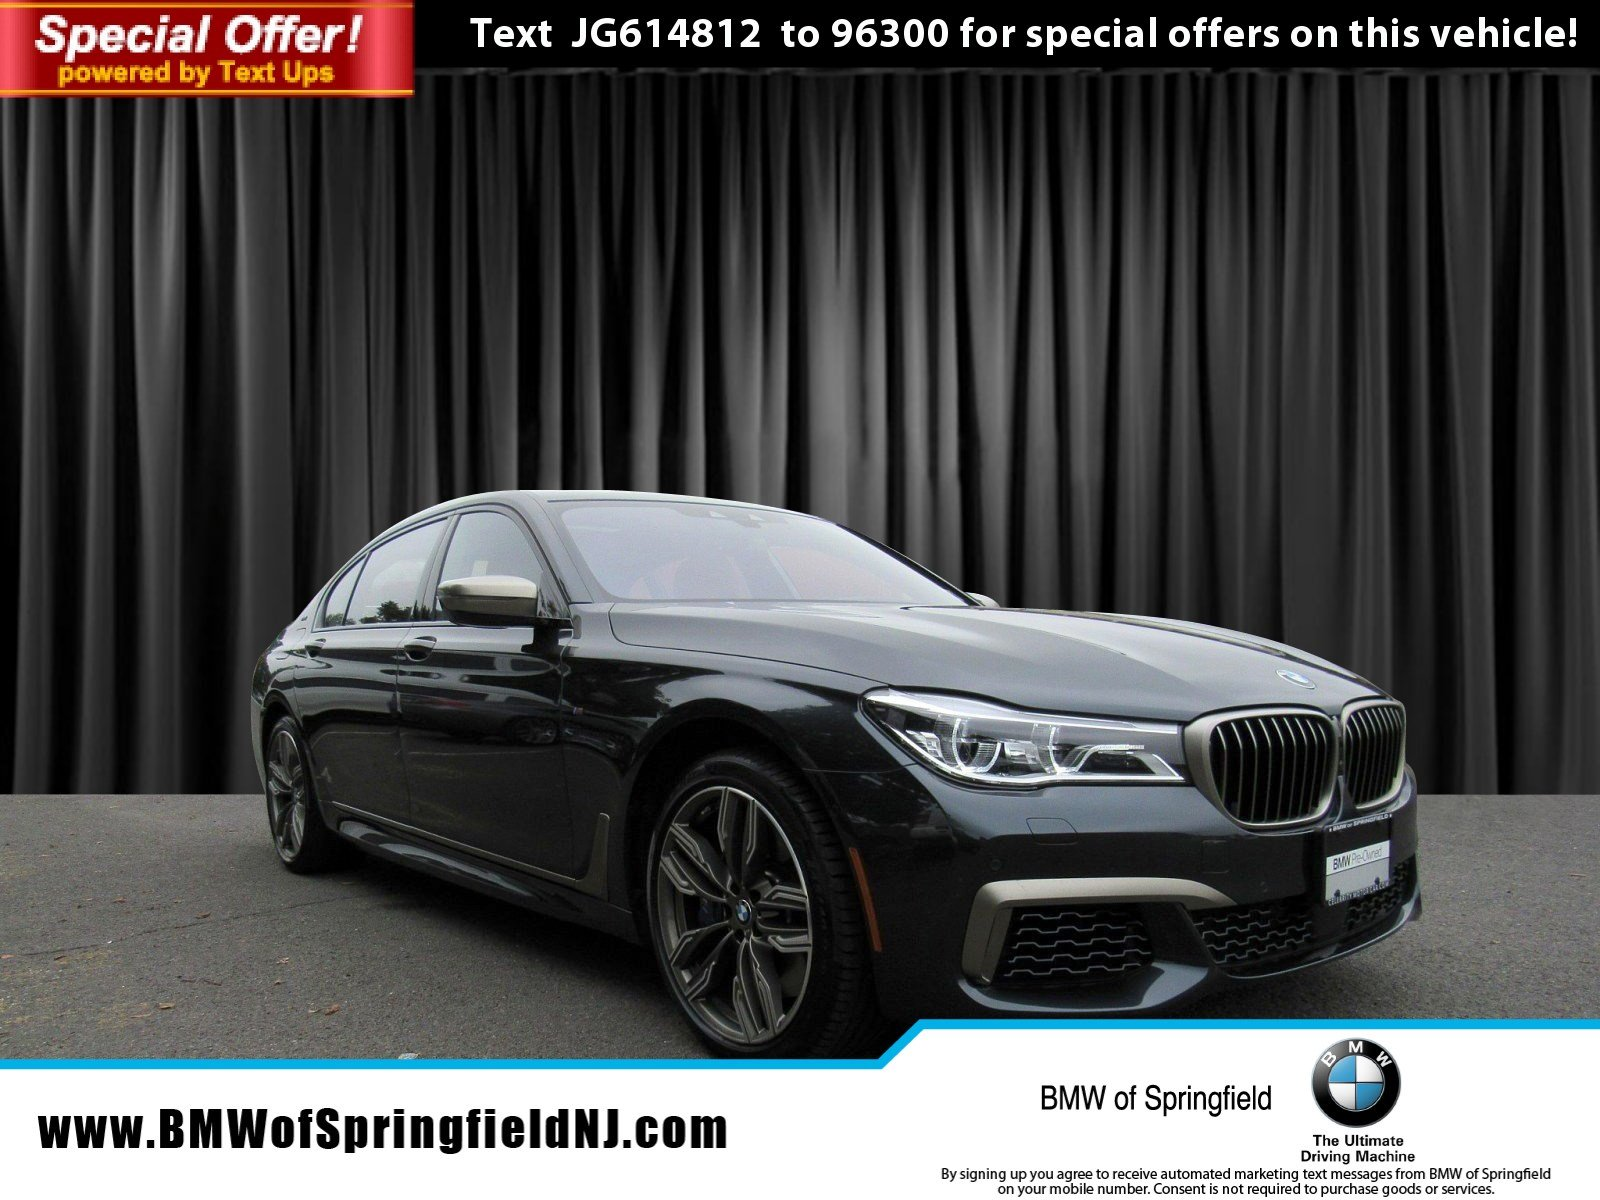 Pre Owned 2018 BMW 7 Series M760i xDrive 4dr Car in Springfield